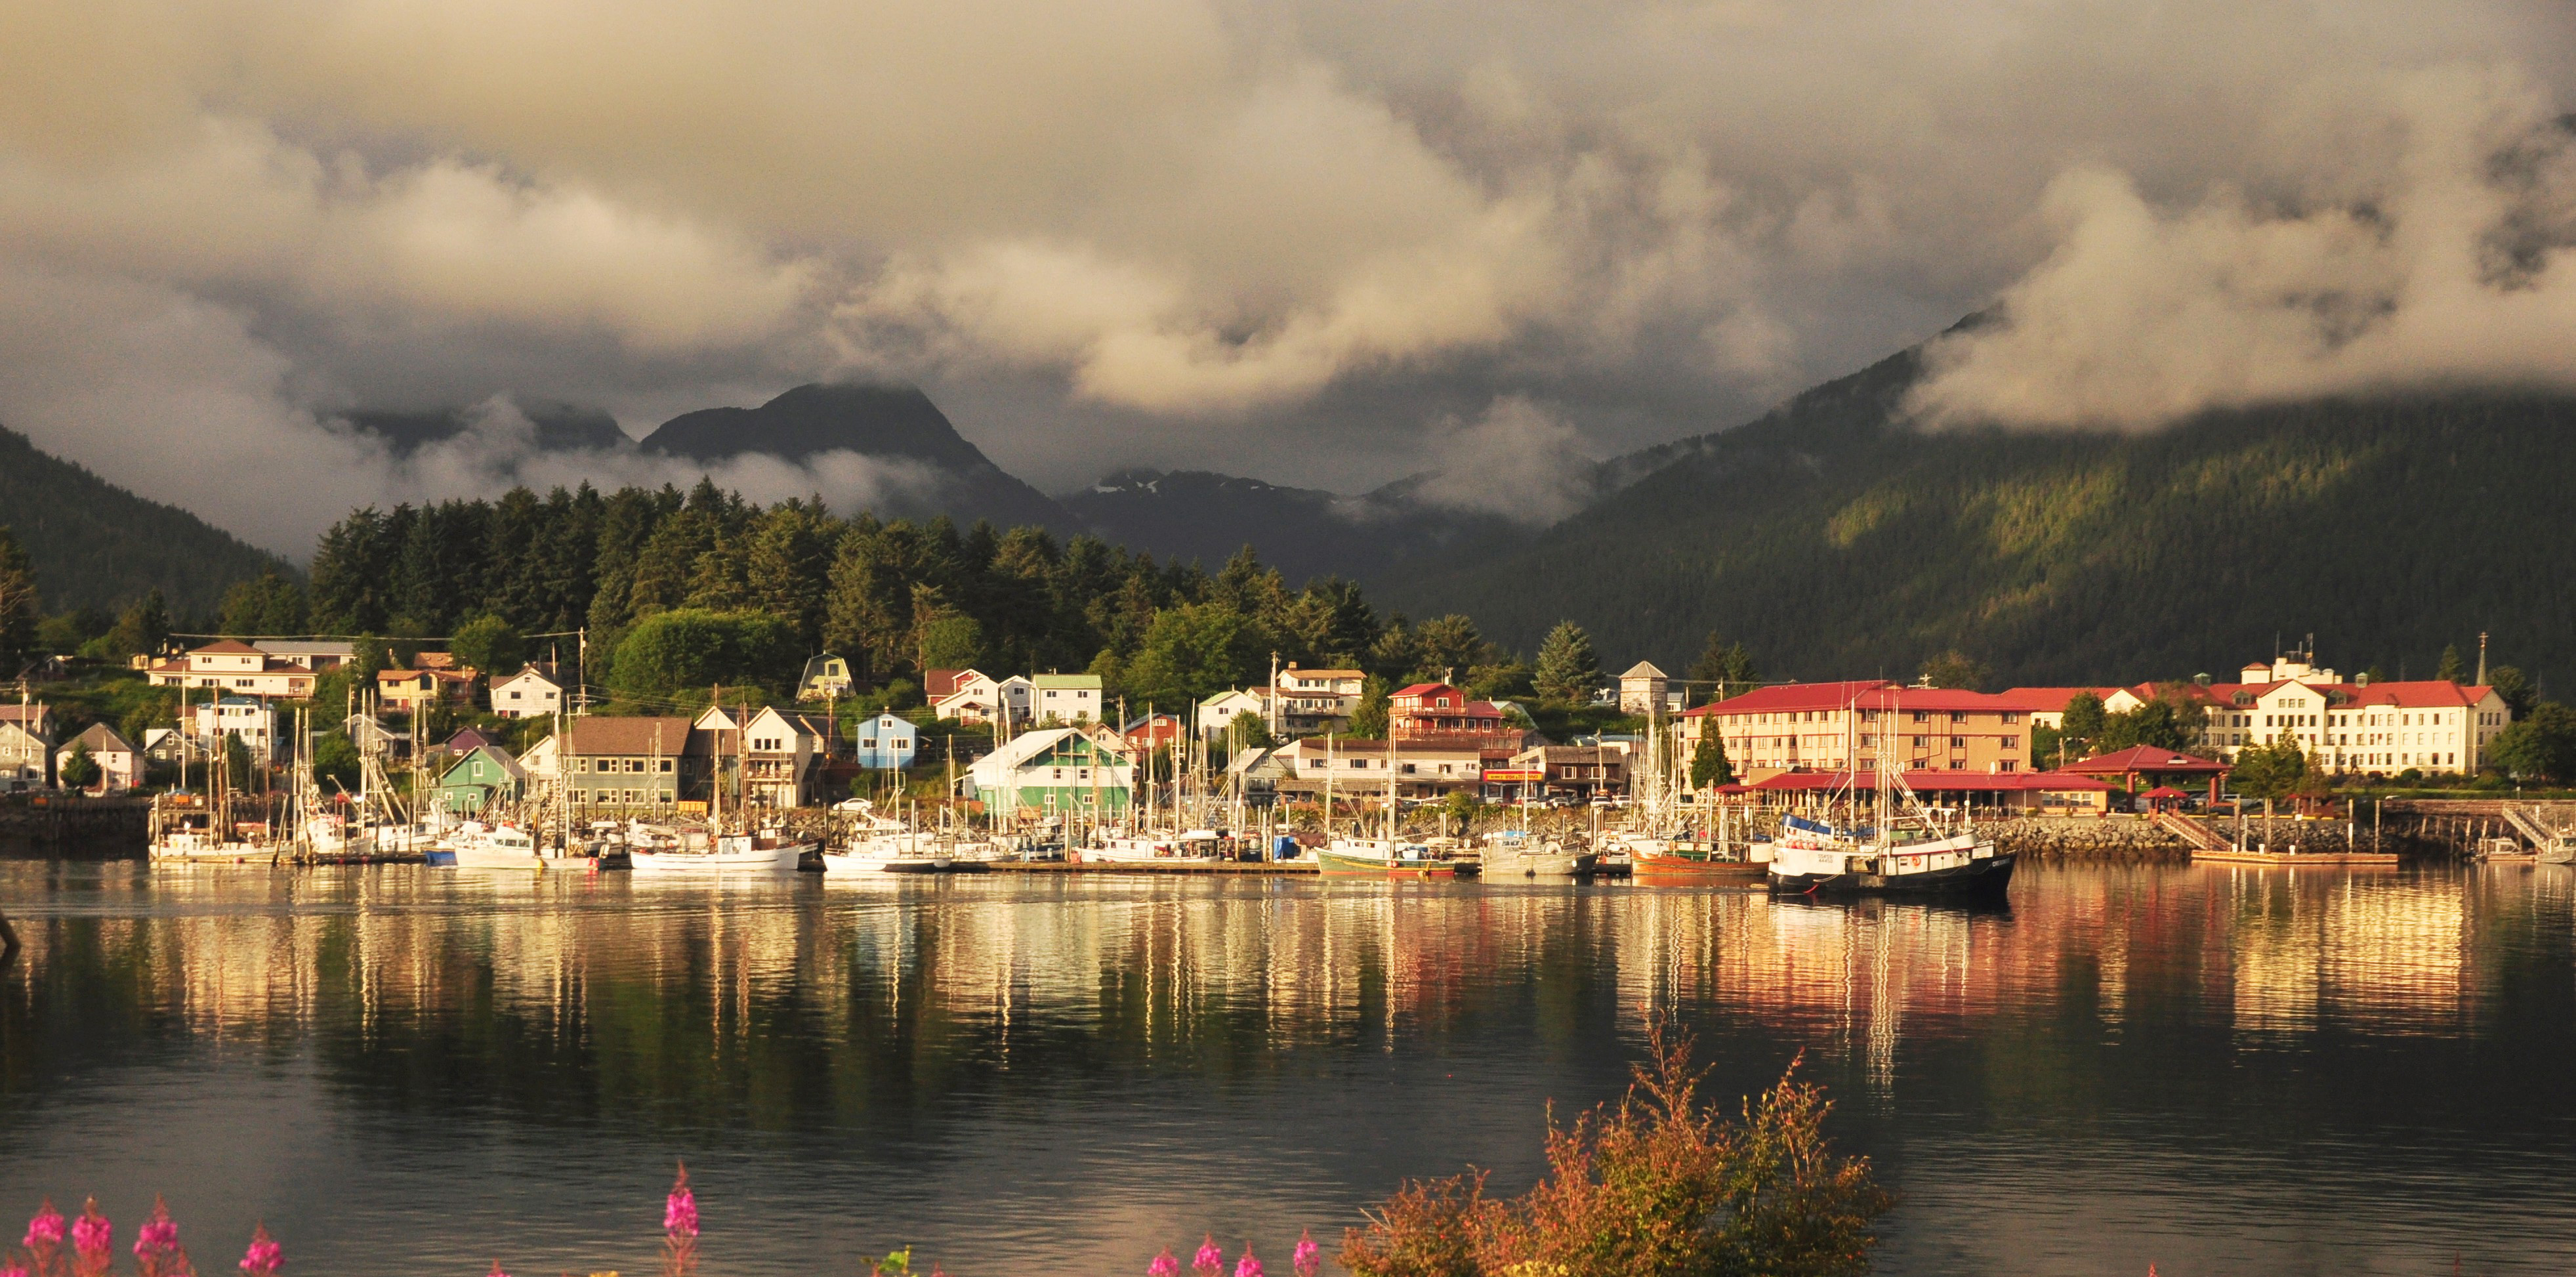 Town of Sitka. Credit: Berett Wilber.